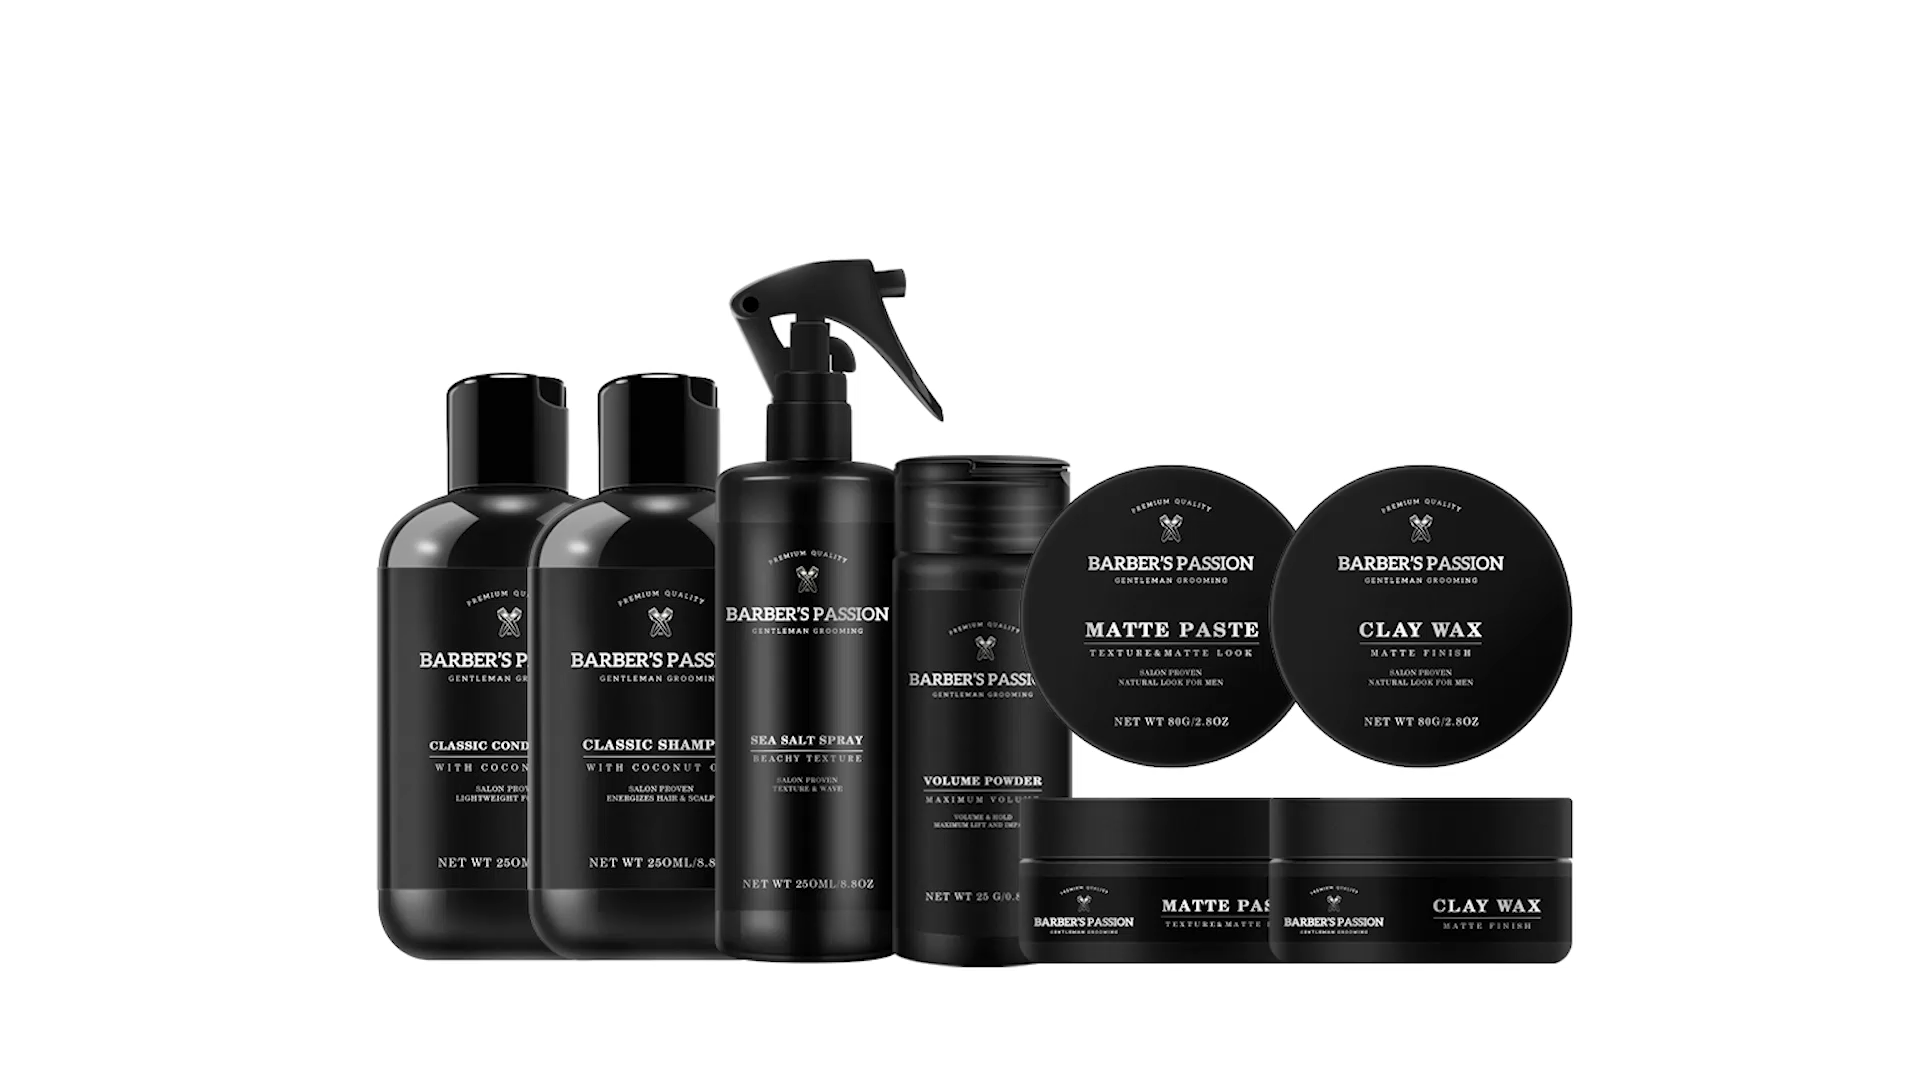 17 year experience manufacturer barber styling products hair care products set for man